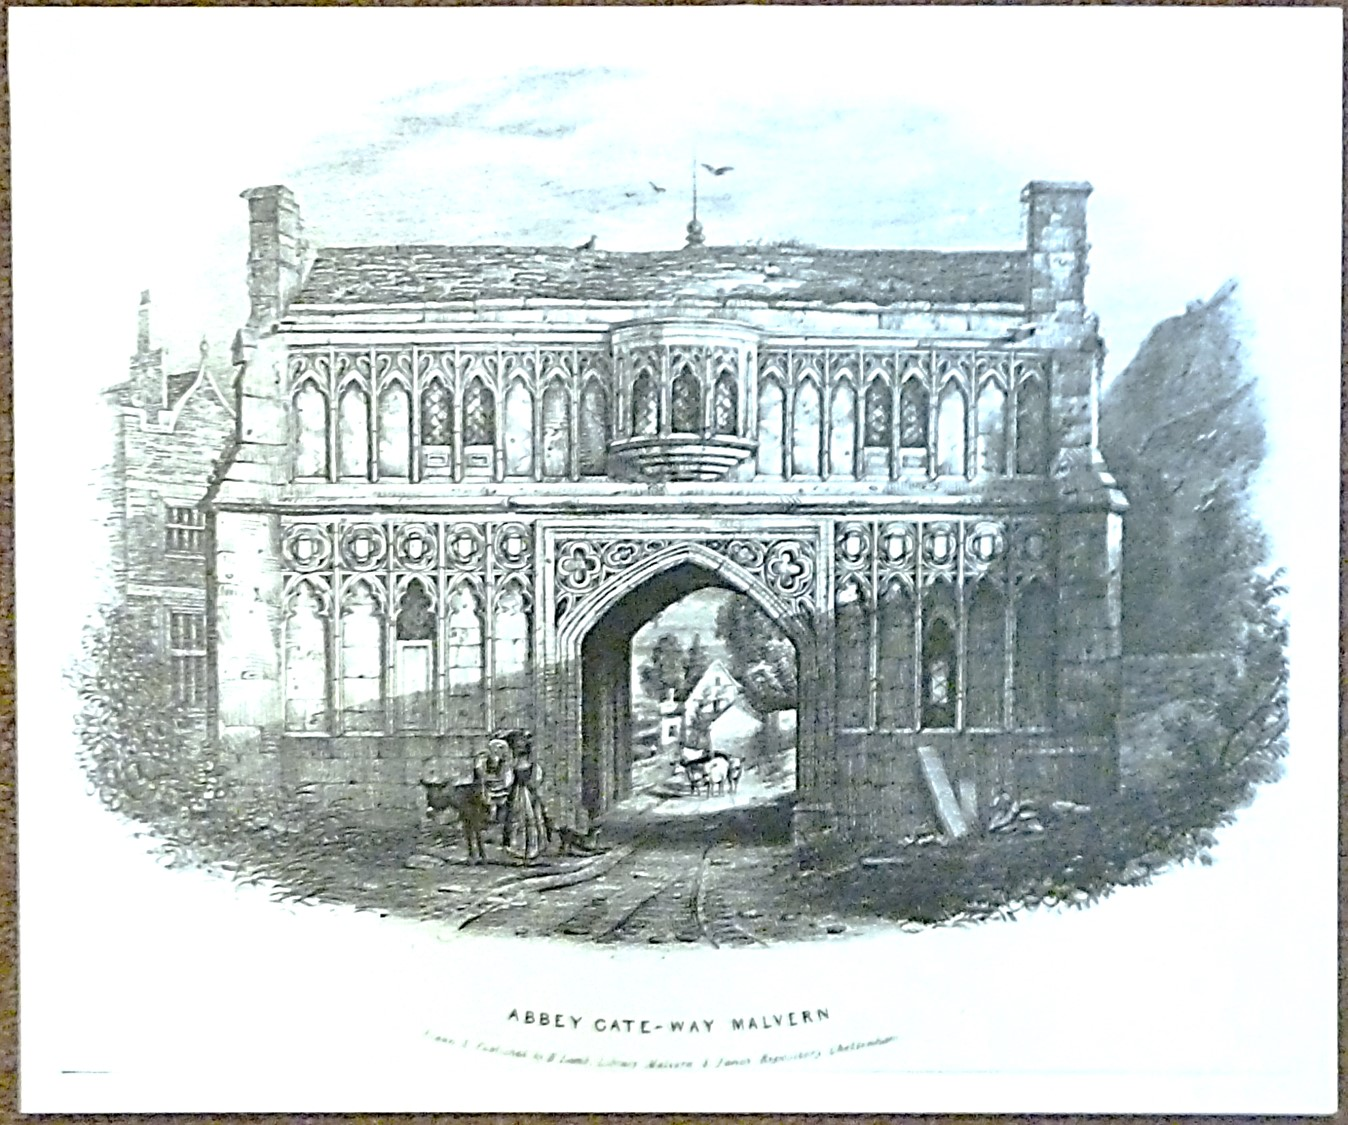 The museum has a large collection of prints, pictures, postcards and glass sides of the Malvern area